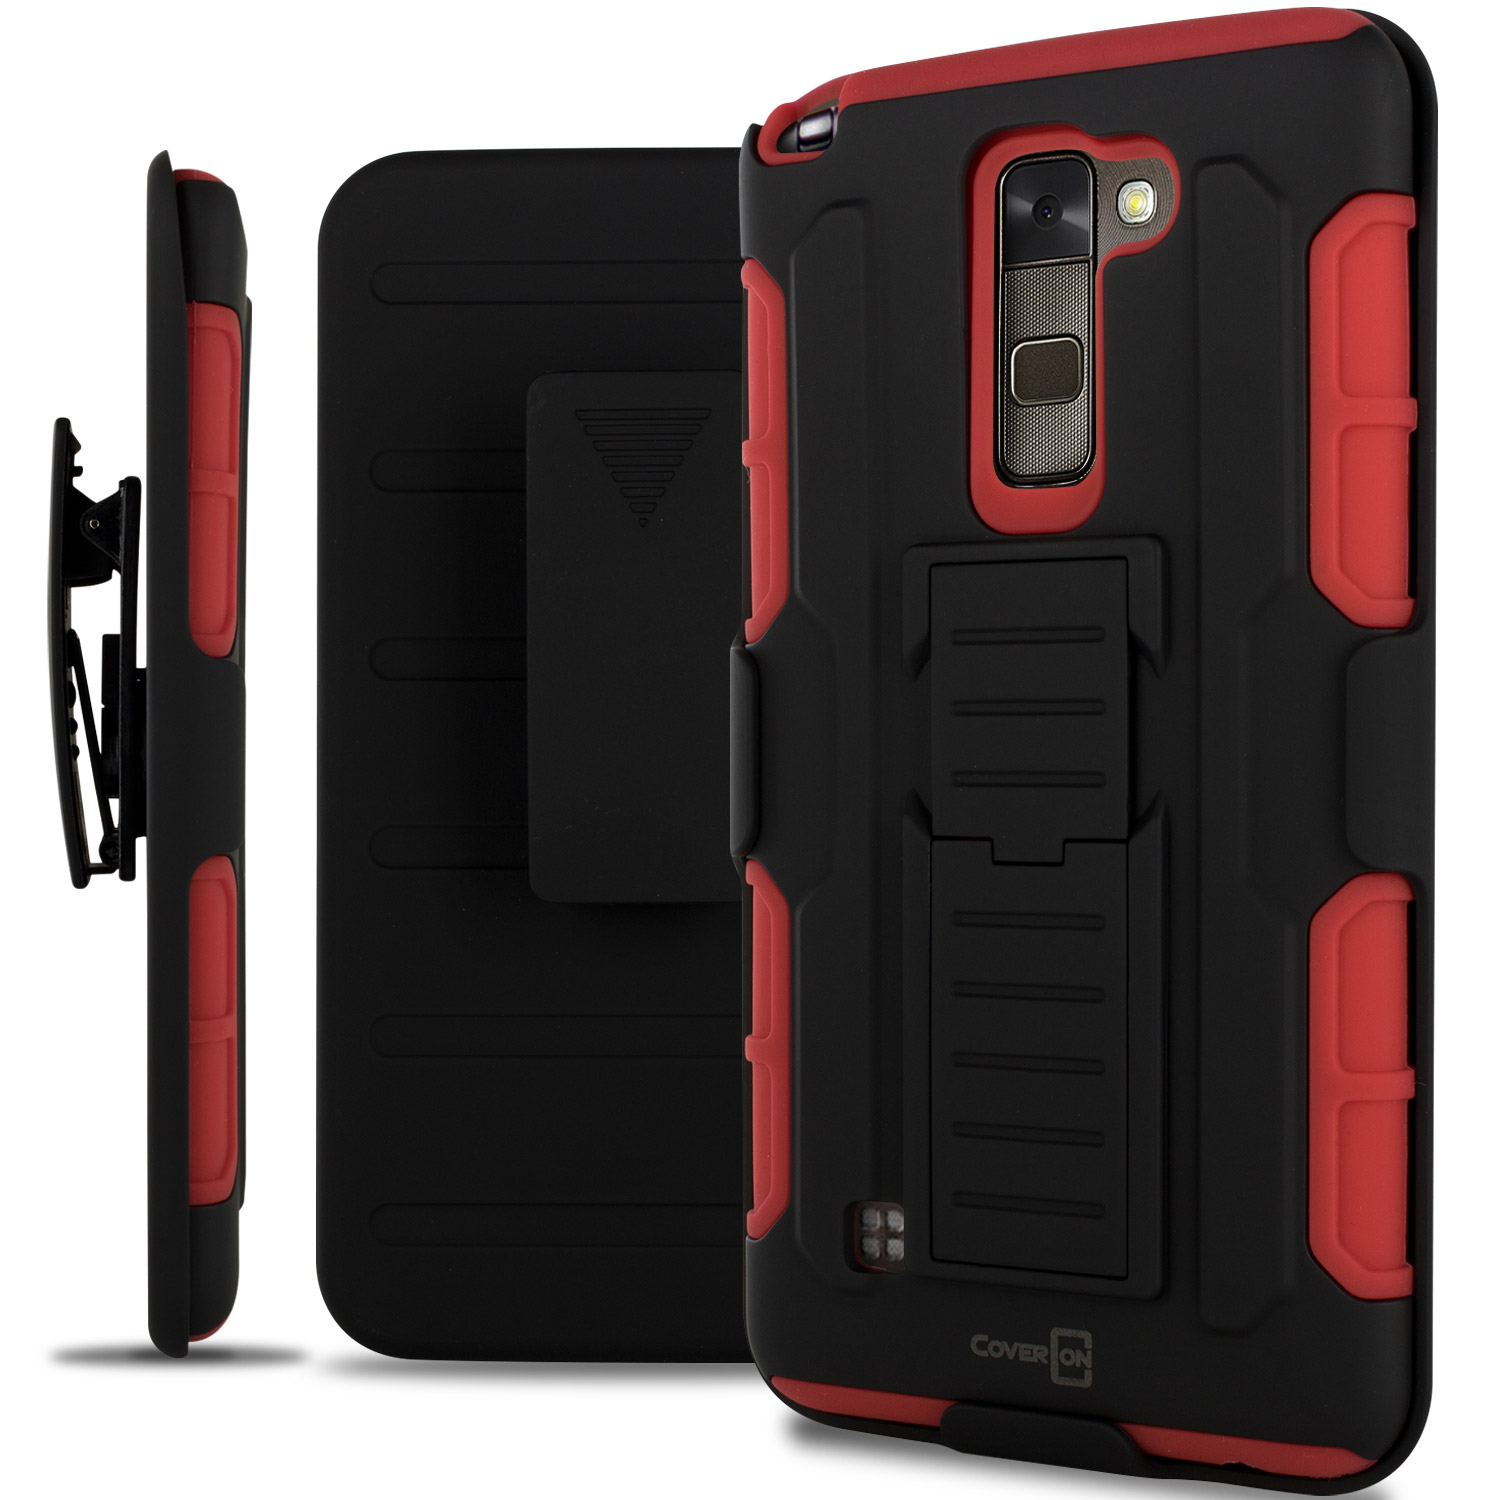 newest ffb86 3dae1 Details about Red Hybrid Rugged Case Holster Cover for LG Stylus 2, G Stylo  2, Stylo 2 V